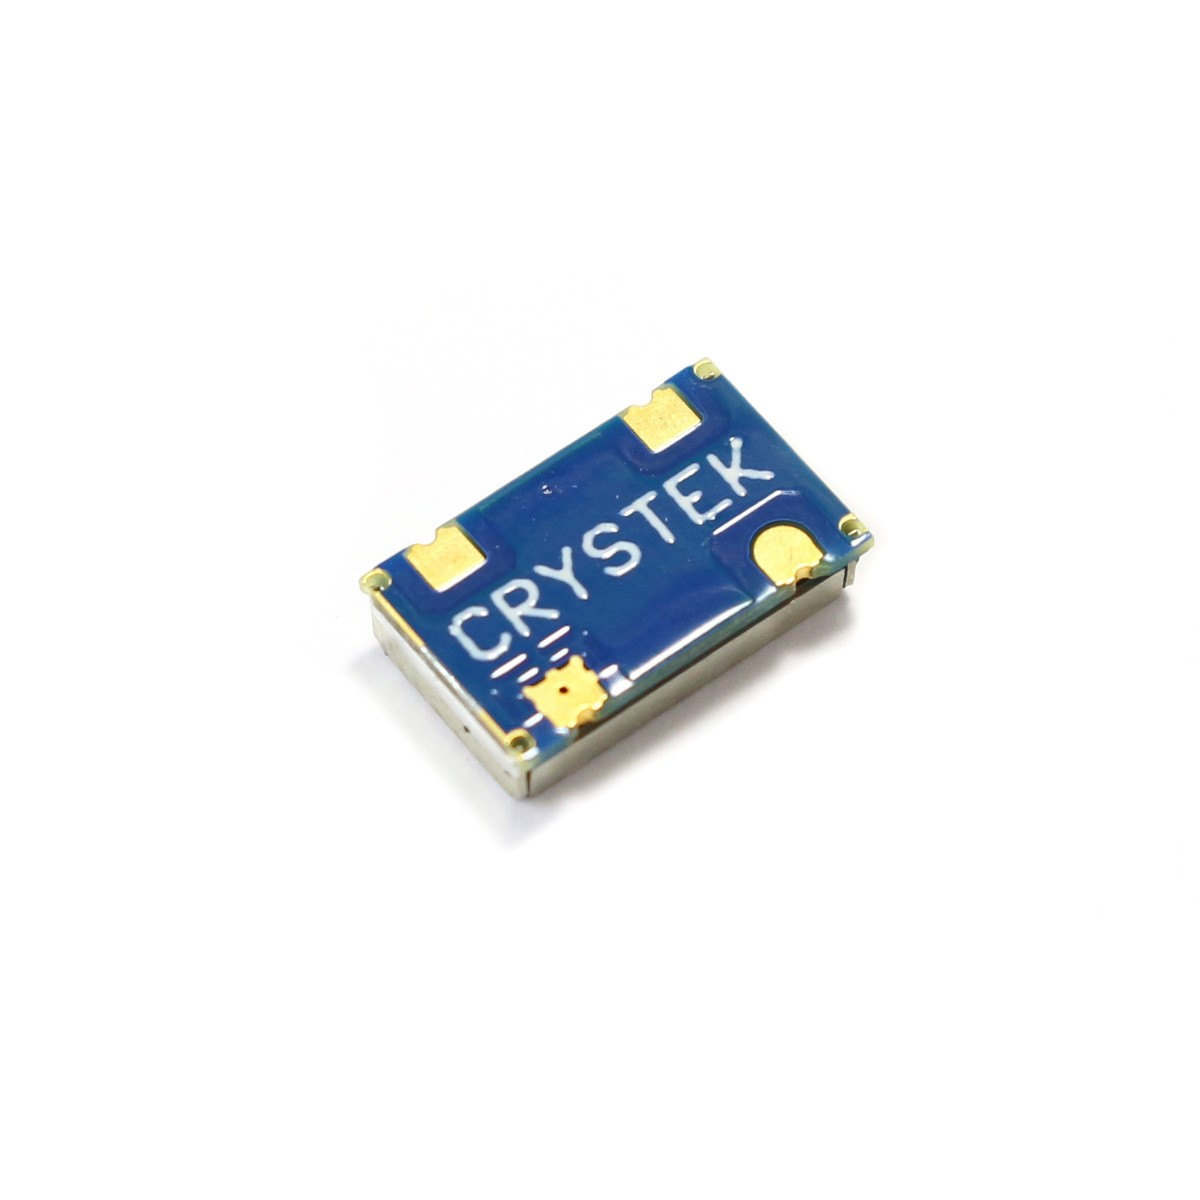 CRYSTEK Ultra-Low Phase Noise Clock 22.5792MHz 3.3V 25ppm HCMOS